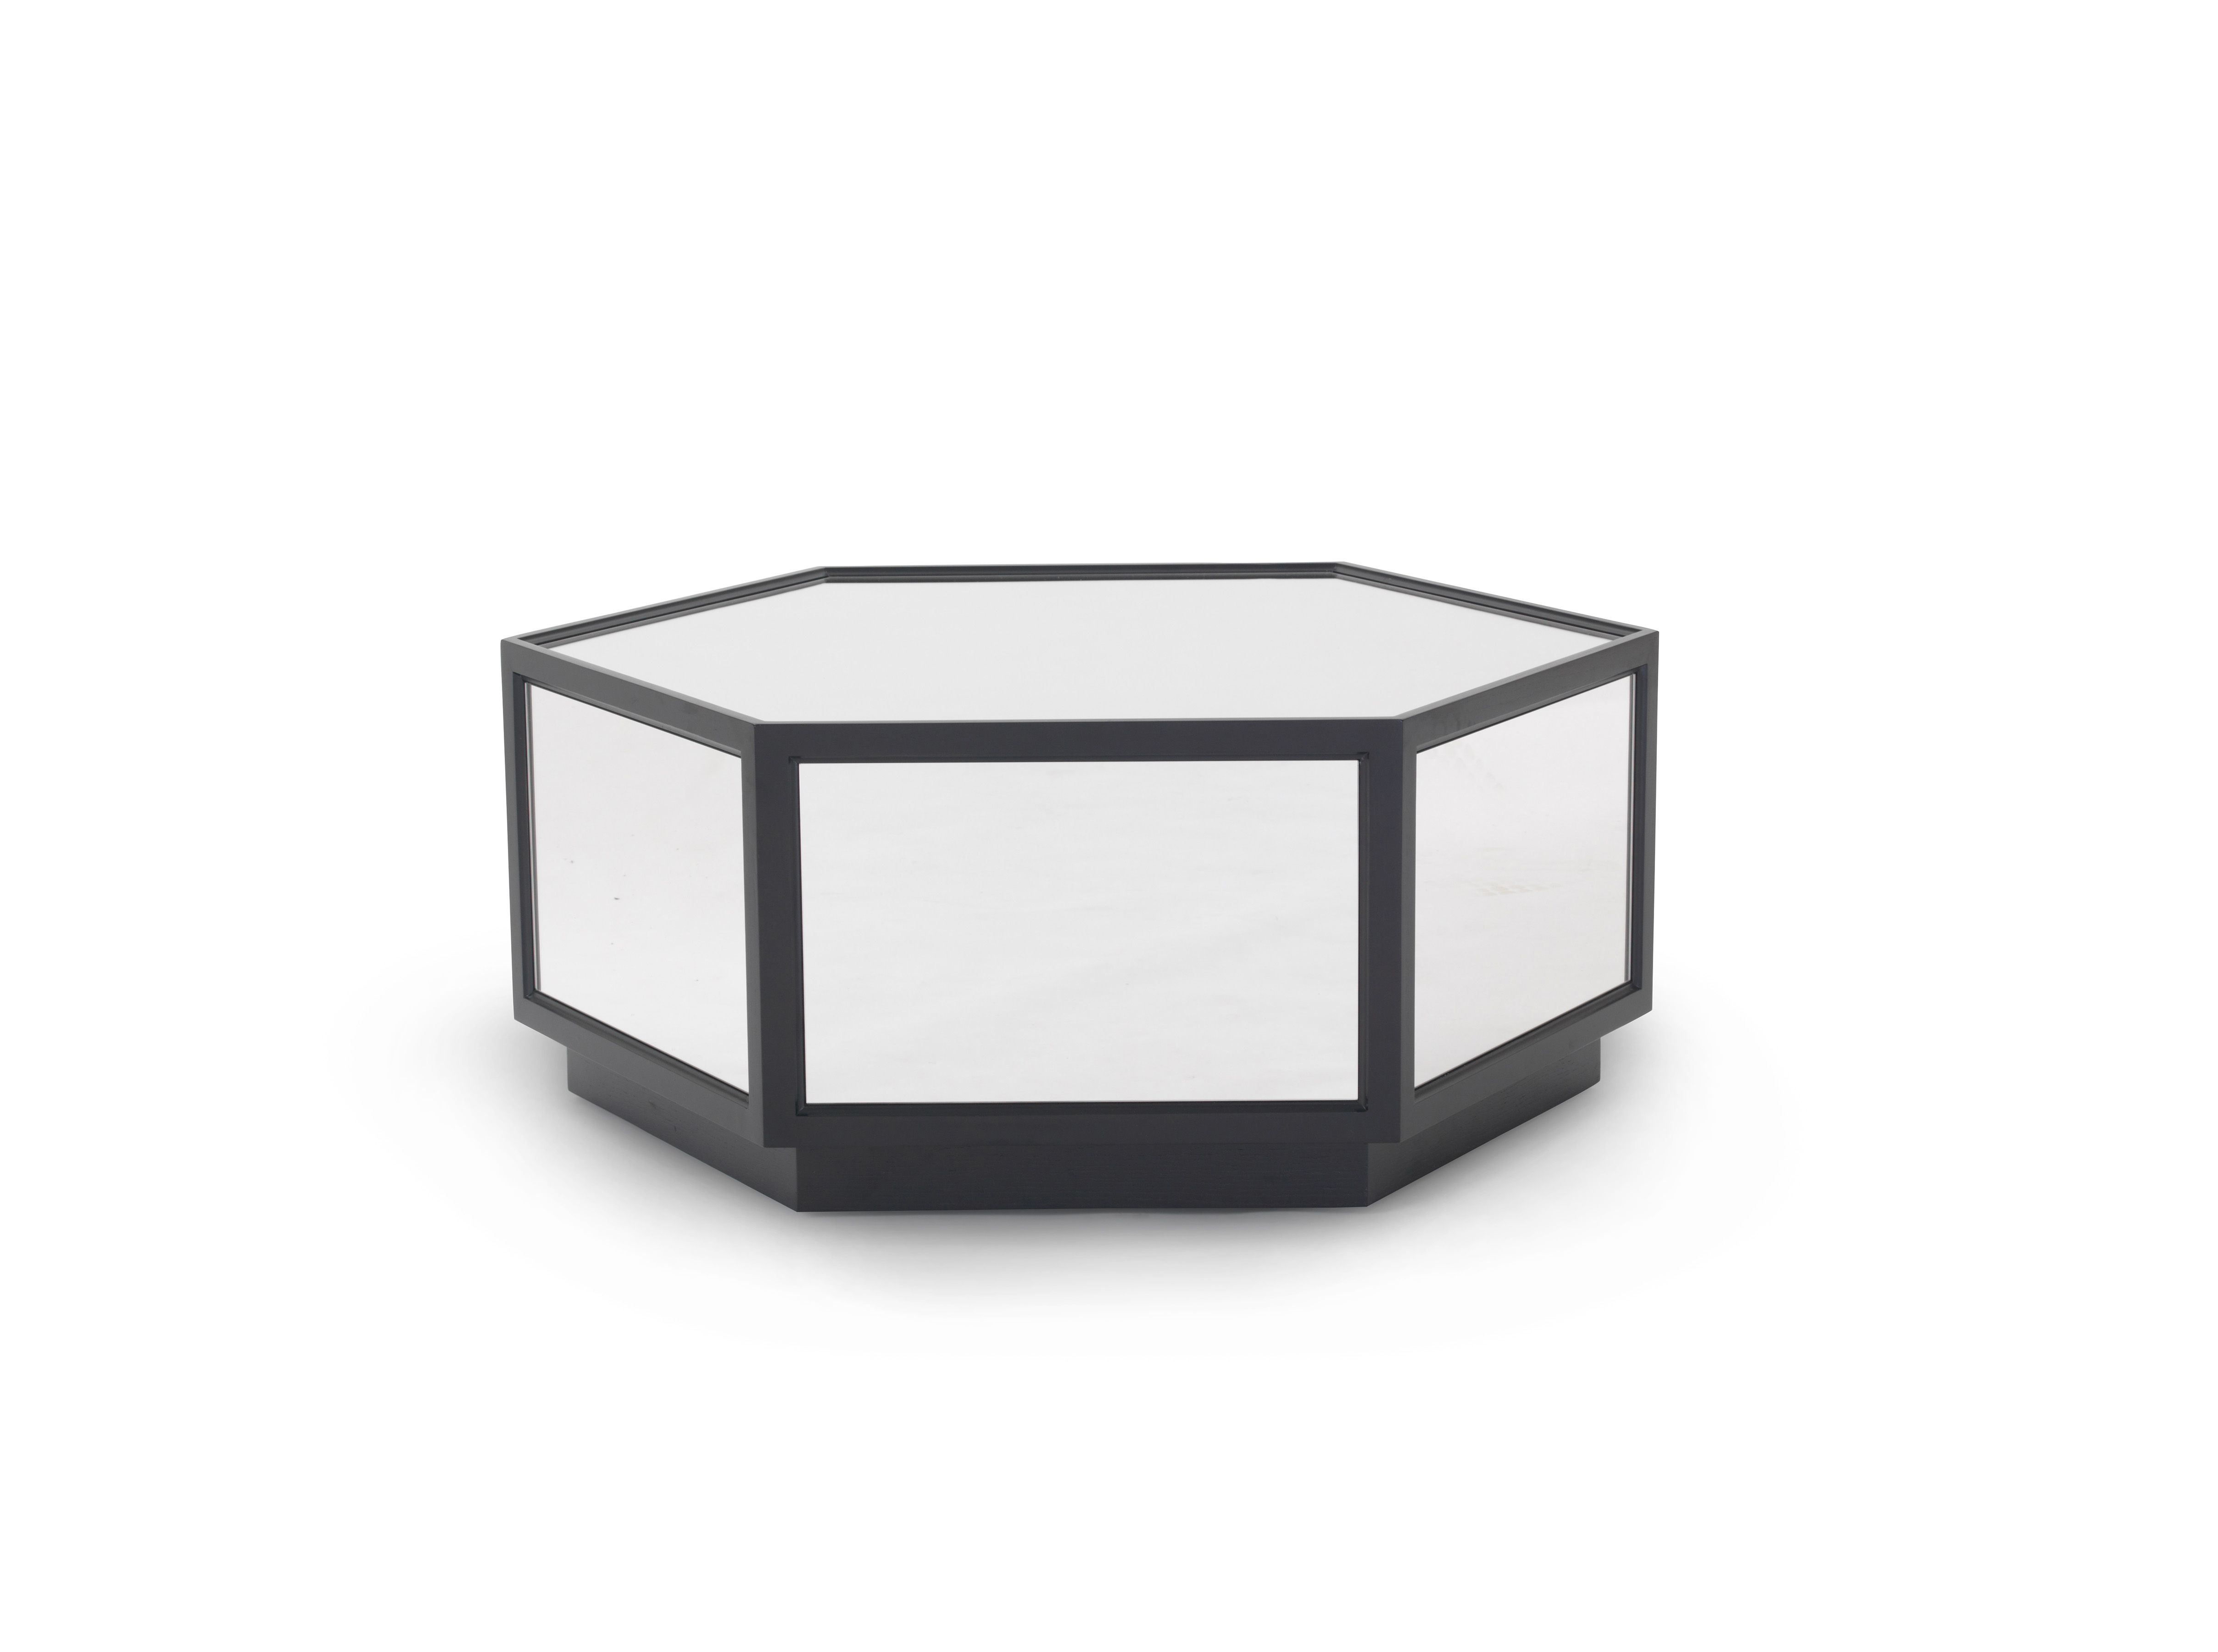 Mitchell Gold Bob Williams Montreal Table A Cafe Hexagonale Sutton Hexagon Coffee Table Coffee Table Contemporary Coffee Table [ 3600 x 4834 Pixel ]